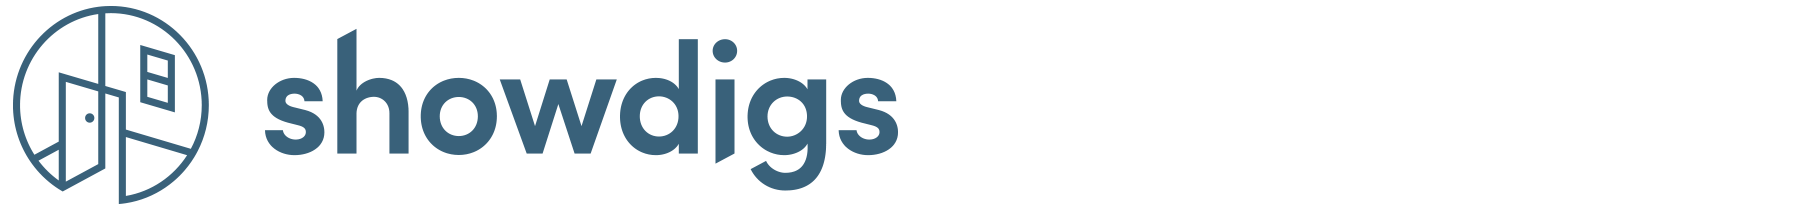 showdigs-footer-logo-3.png